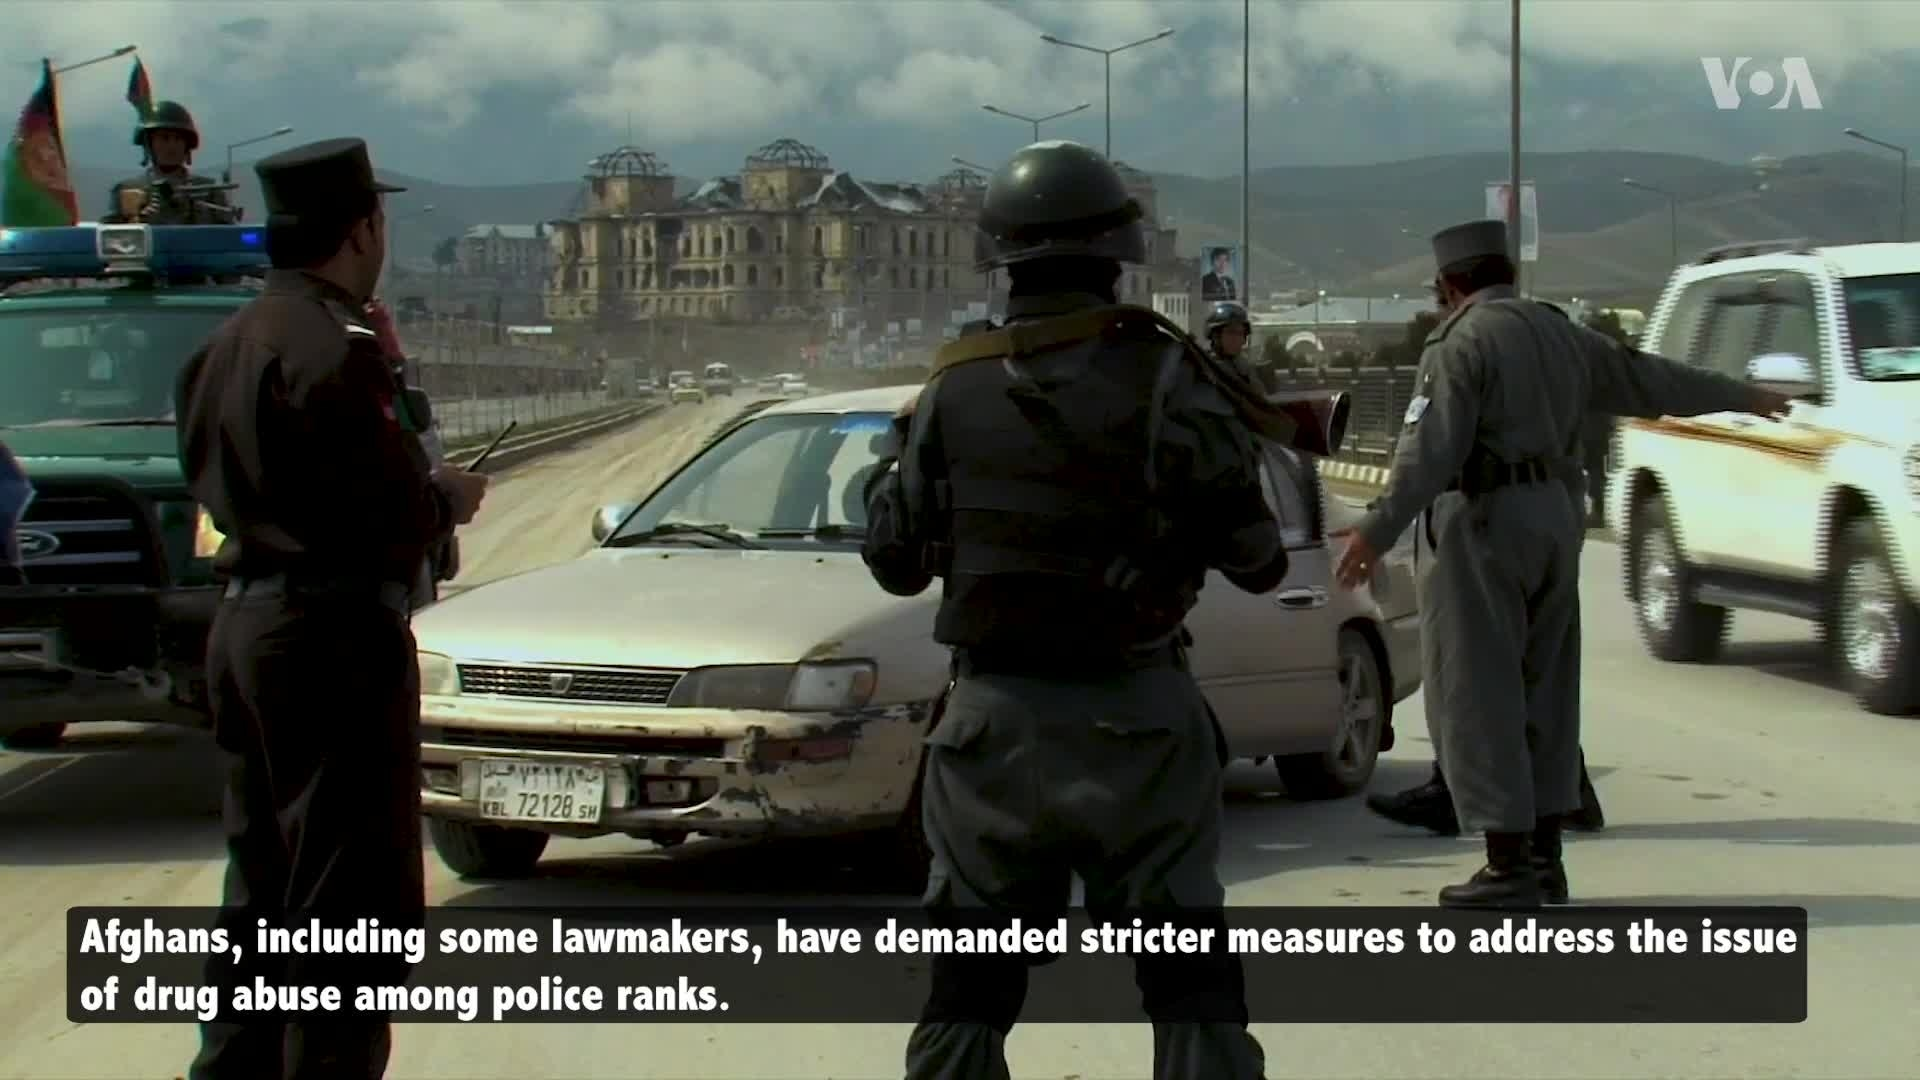 Afghanistan: Measures in Place to Curb Drug Use in Police